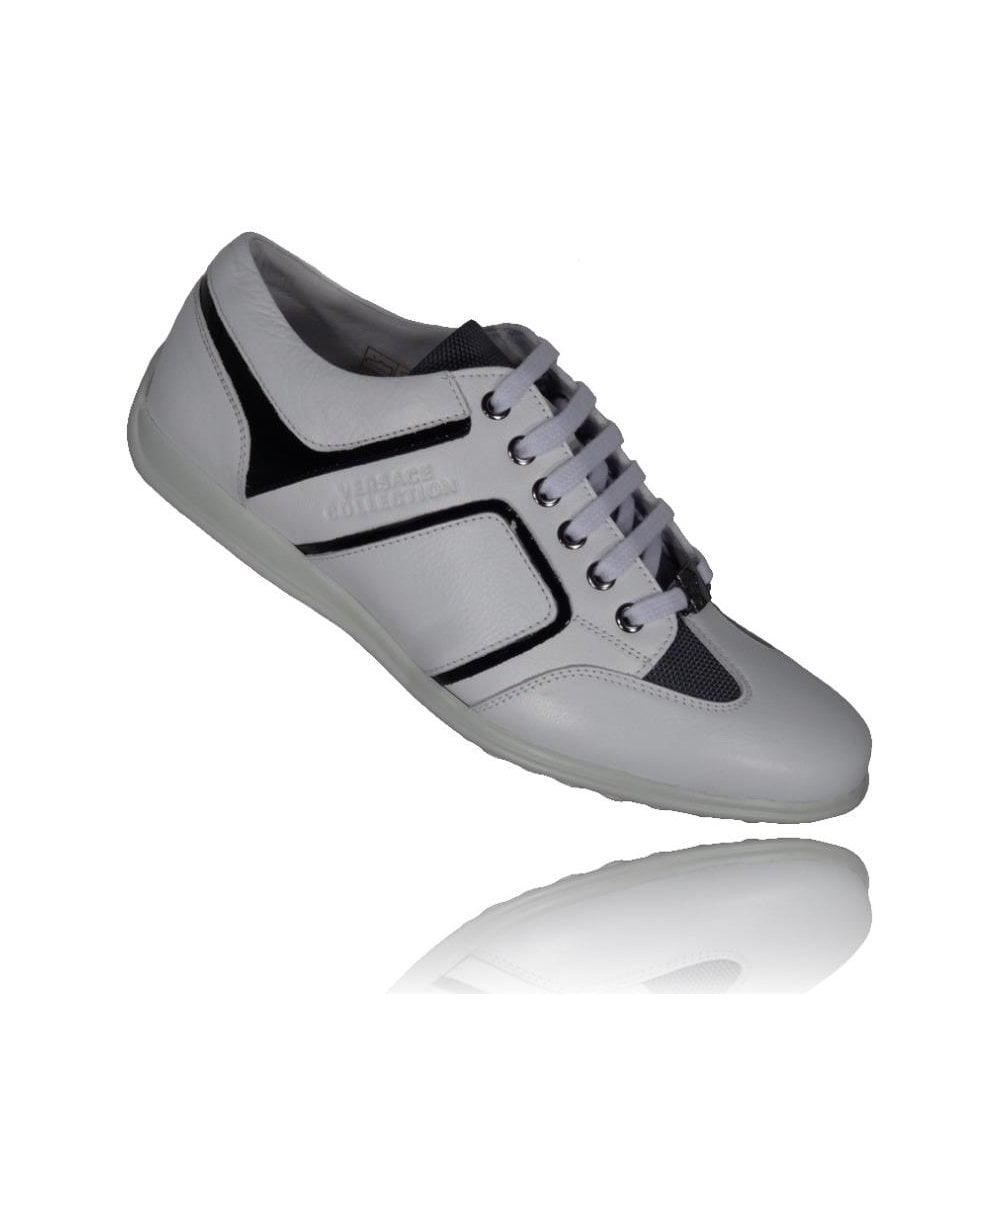 Versace Shoes Lace Up Sneakers